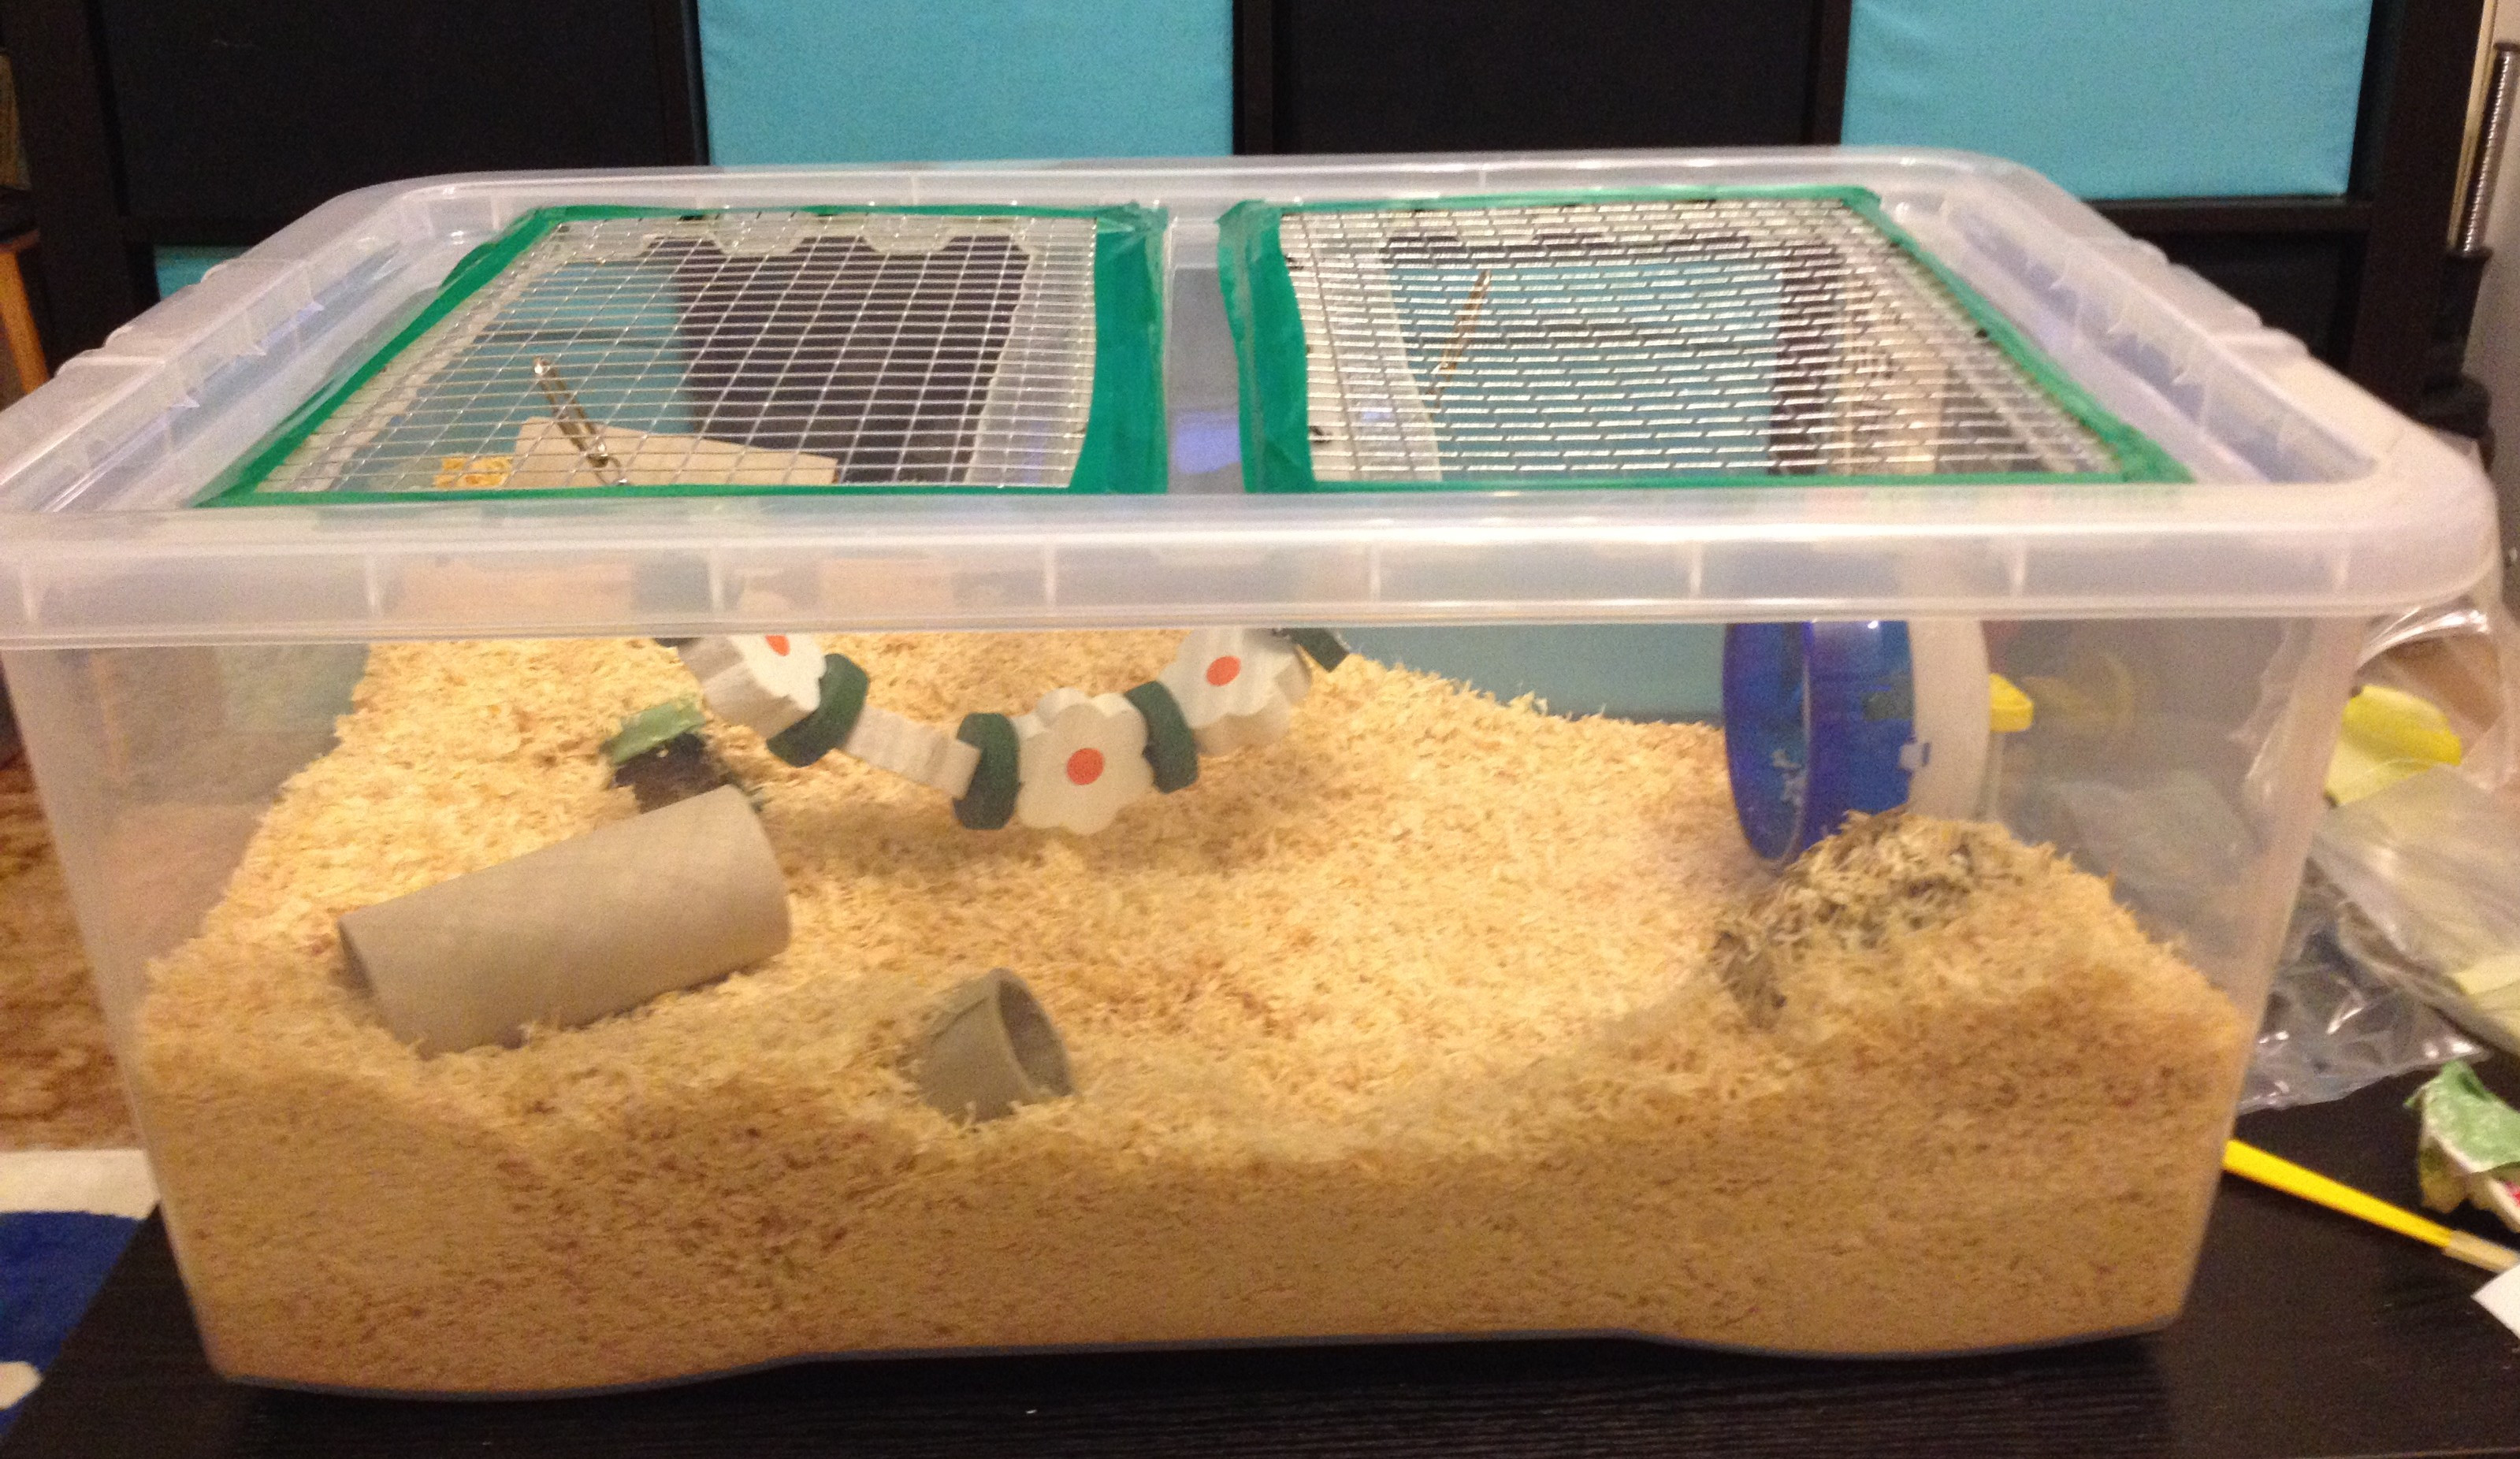 Best ideas about DIY Hamster Cage . Save or Pin Make a hamster cage thehamsterhut Now.